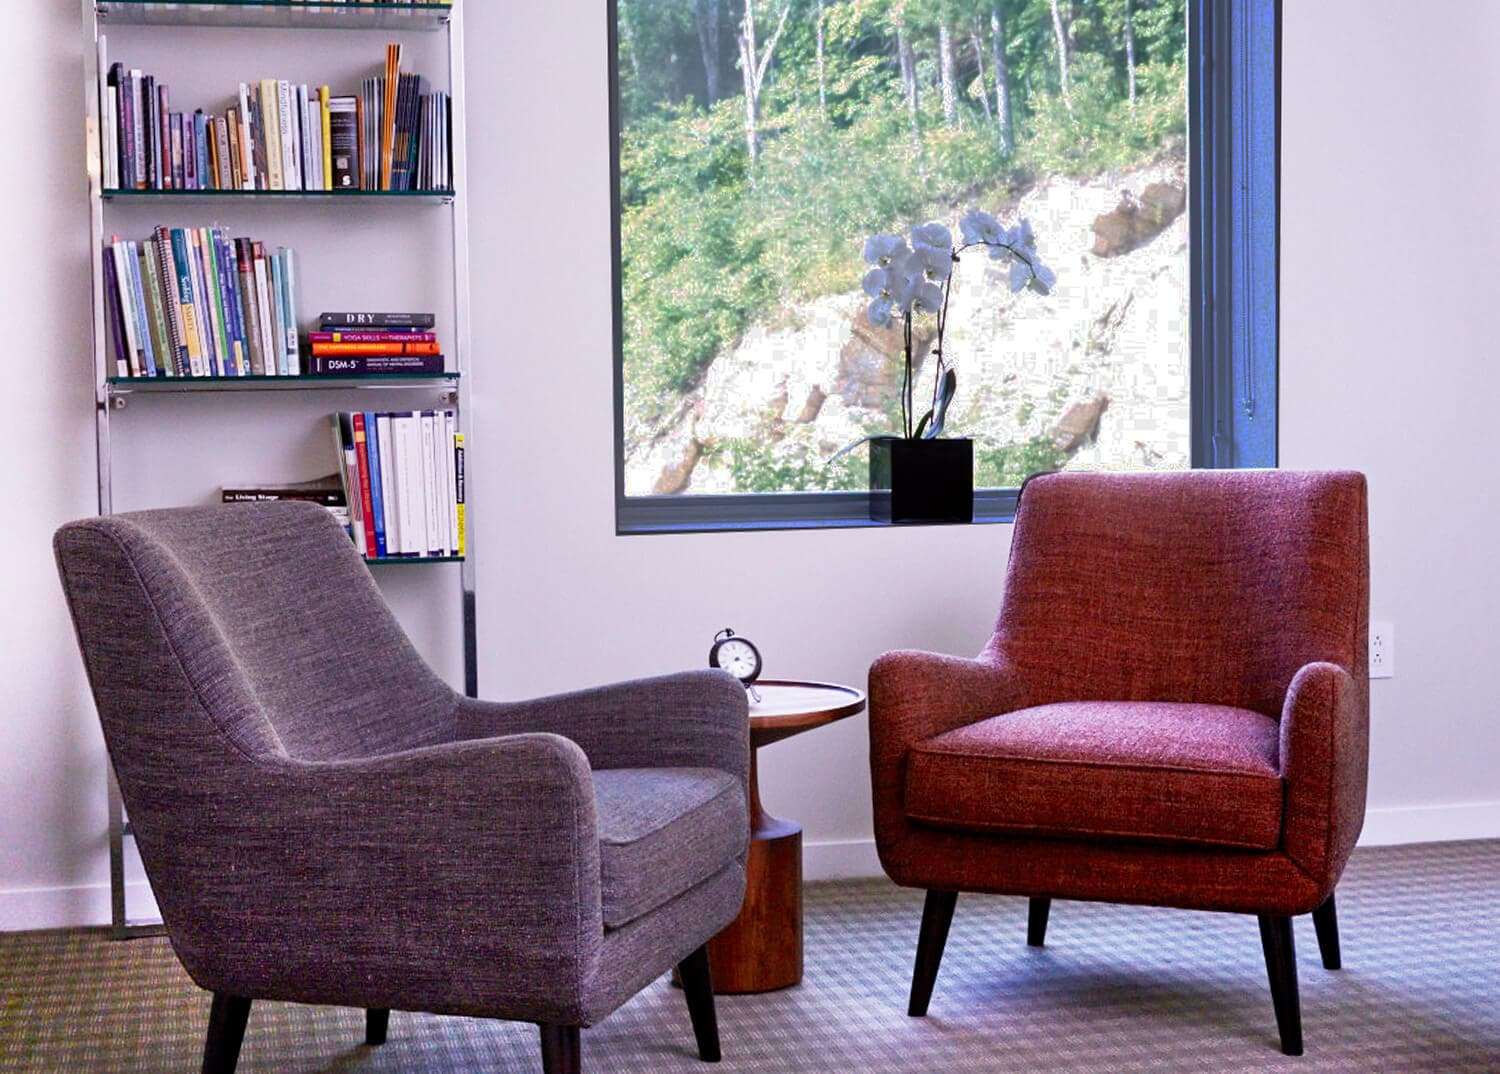 Cozy 1-on-1 counseling room at Mountainside Addiction Treatment Center in Connecticut.